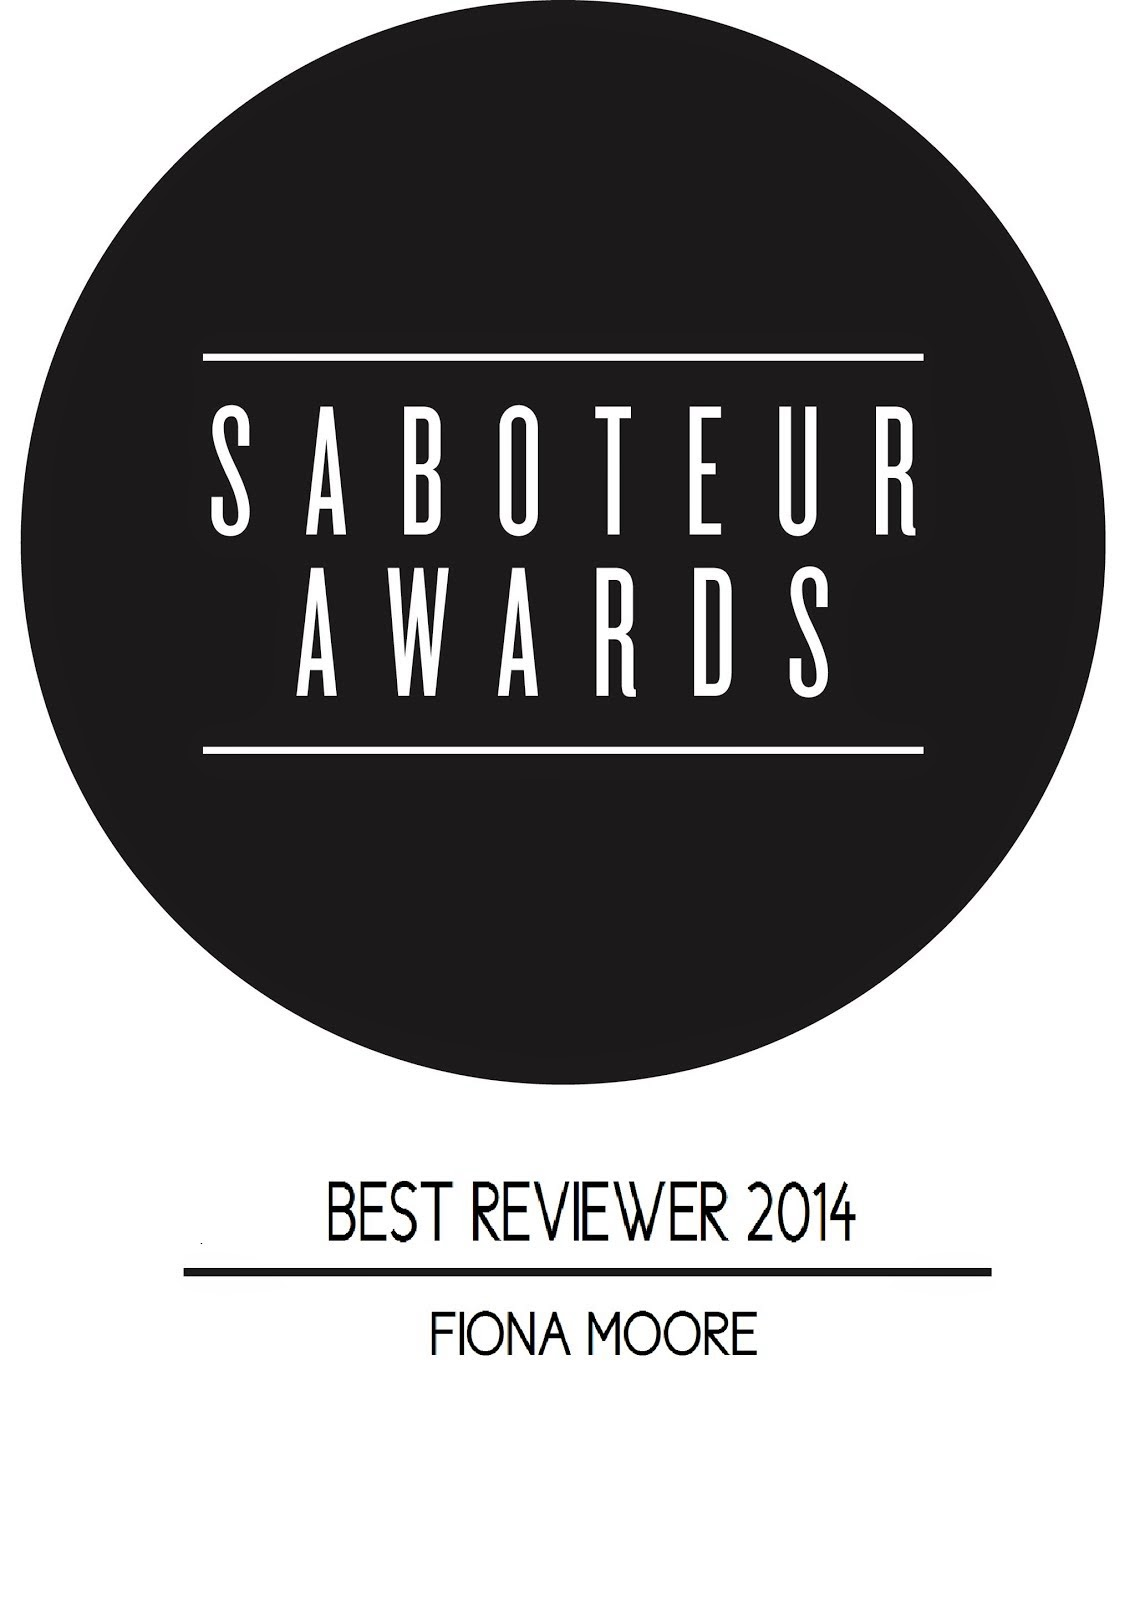 Saboteur Awards 2014